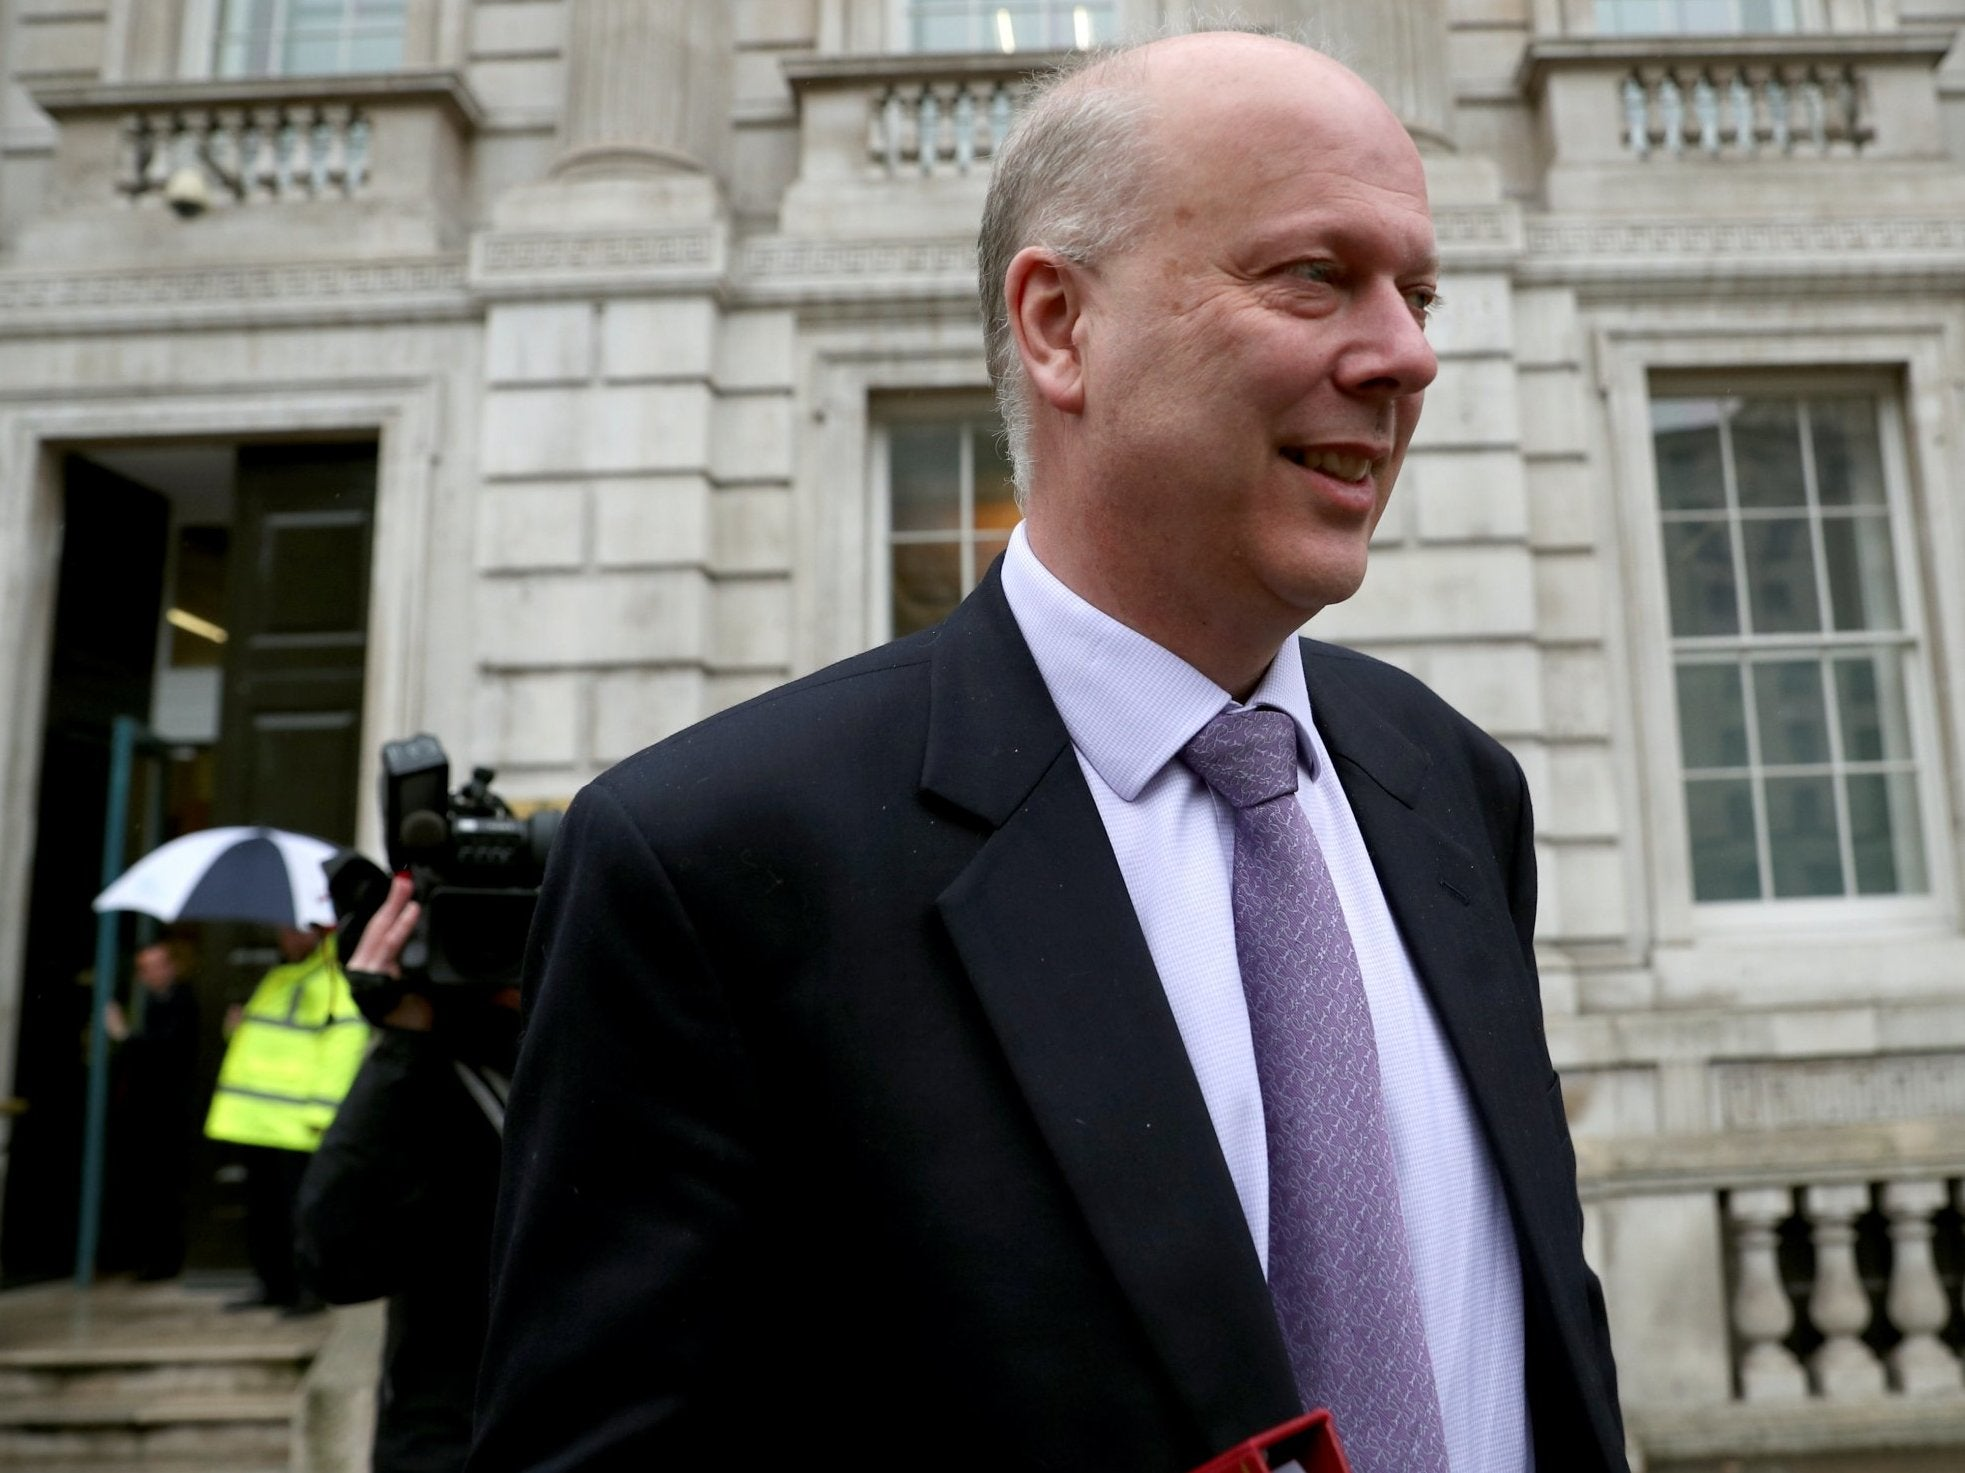 Chris Grayling as chair of the intelligence committee? That's an oxymoron | Sean O'Grady